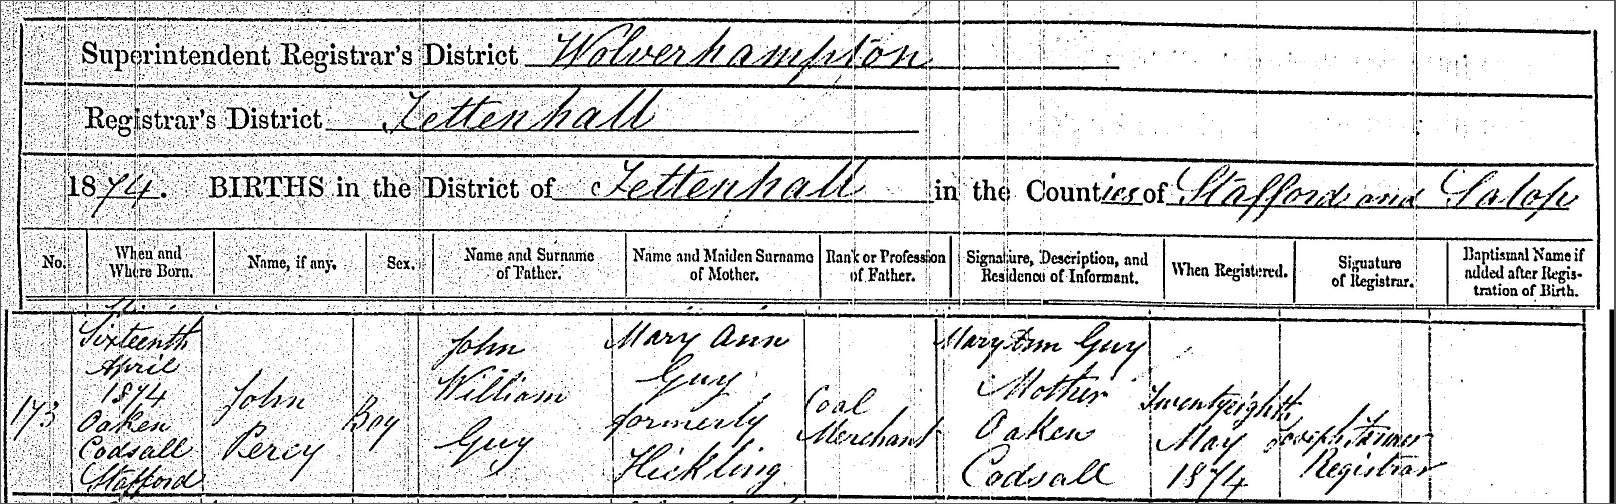 Example scottish birth certificate images certificate design and old rare books on cd genealogy family history anguline scottish certificates yadclub images aiddatafo Image collections